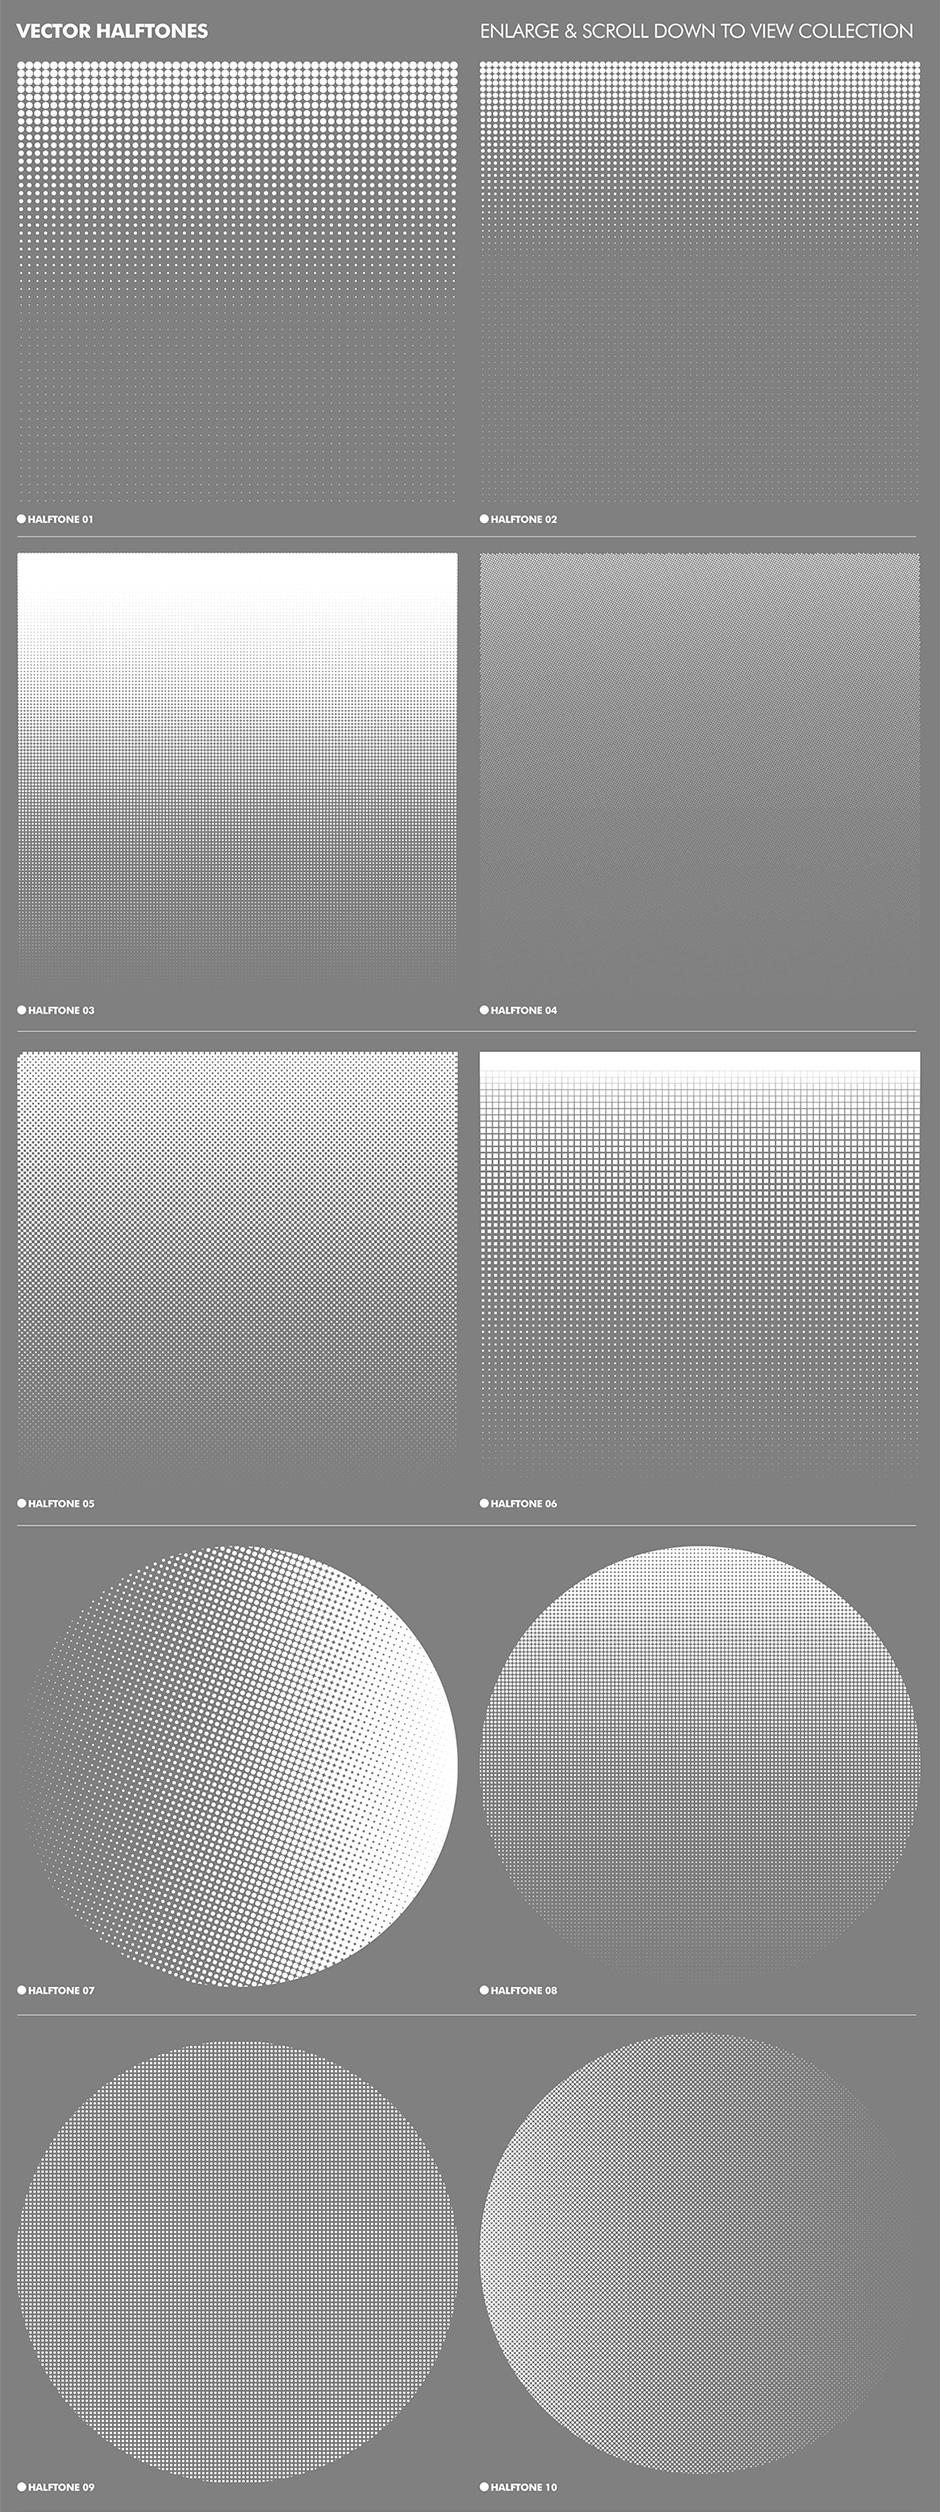 Clean Vector Halftone Effects Collection